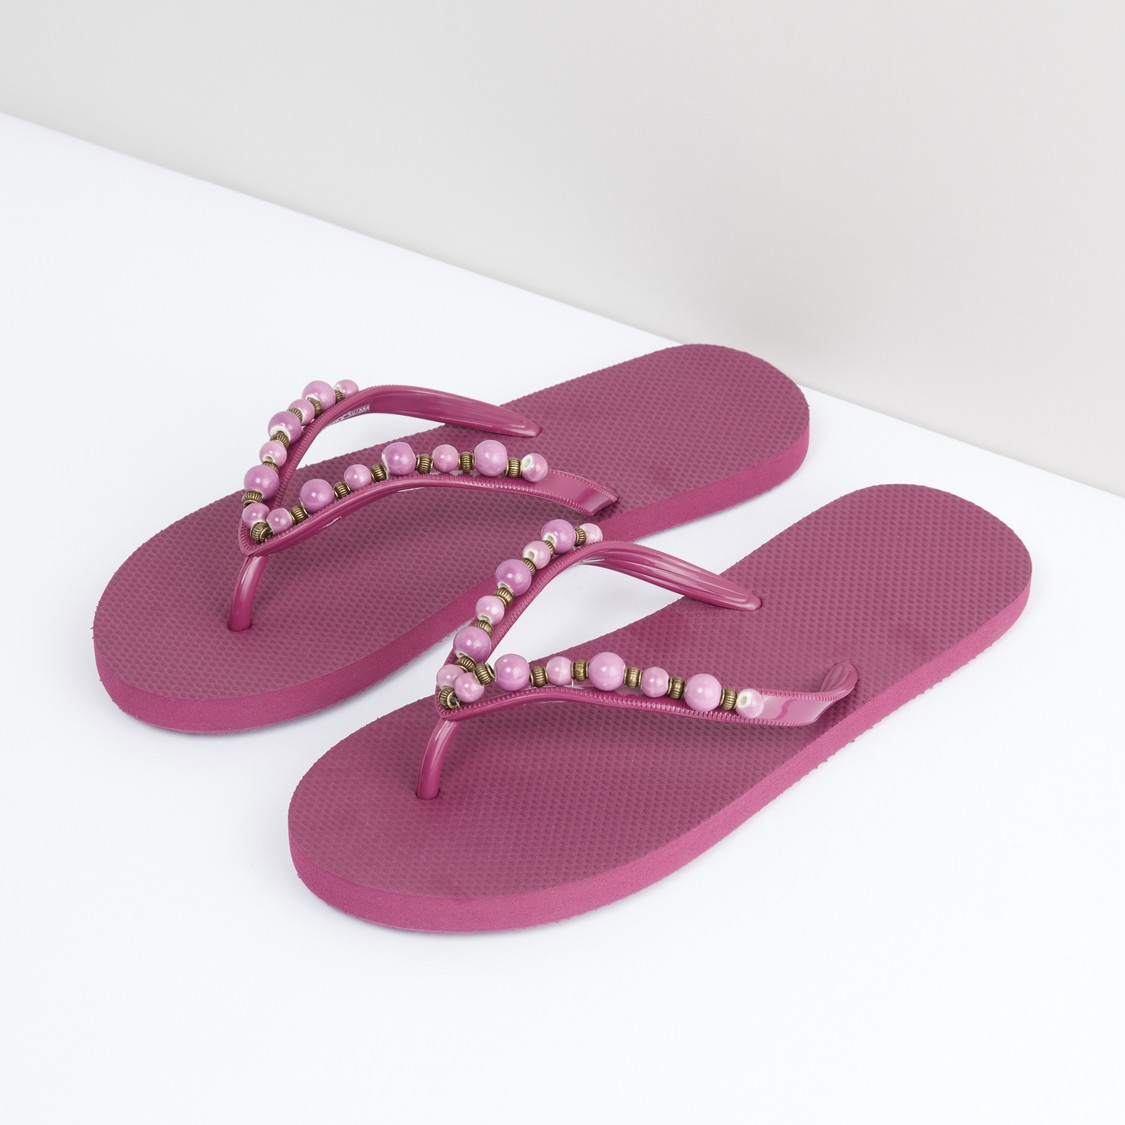 Textured Flip Flops with Beaded Straps